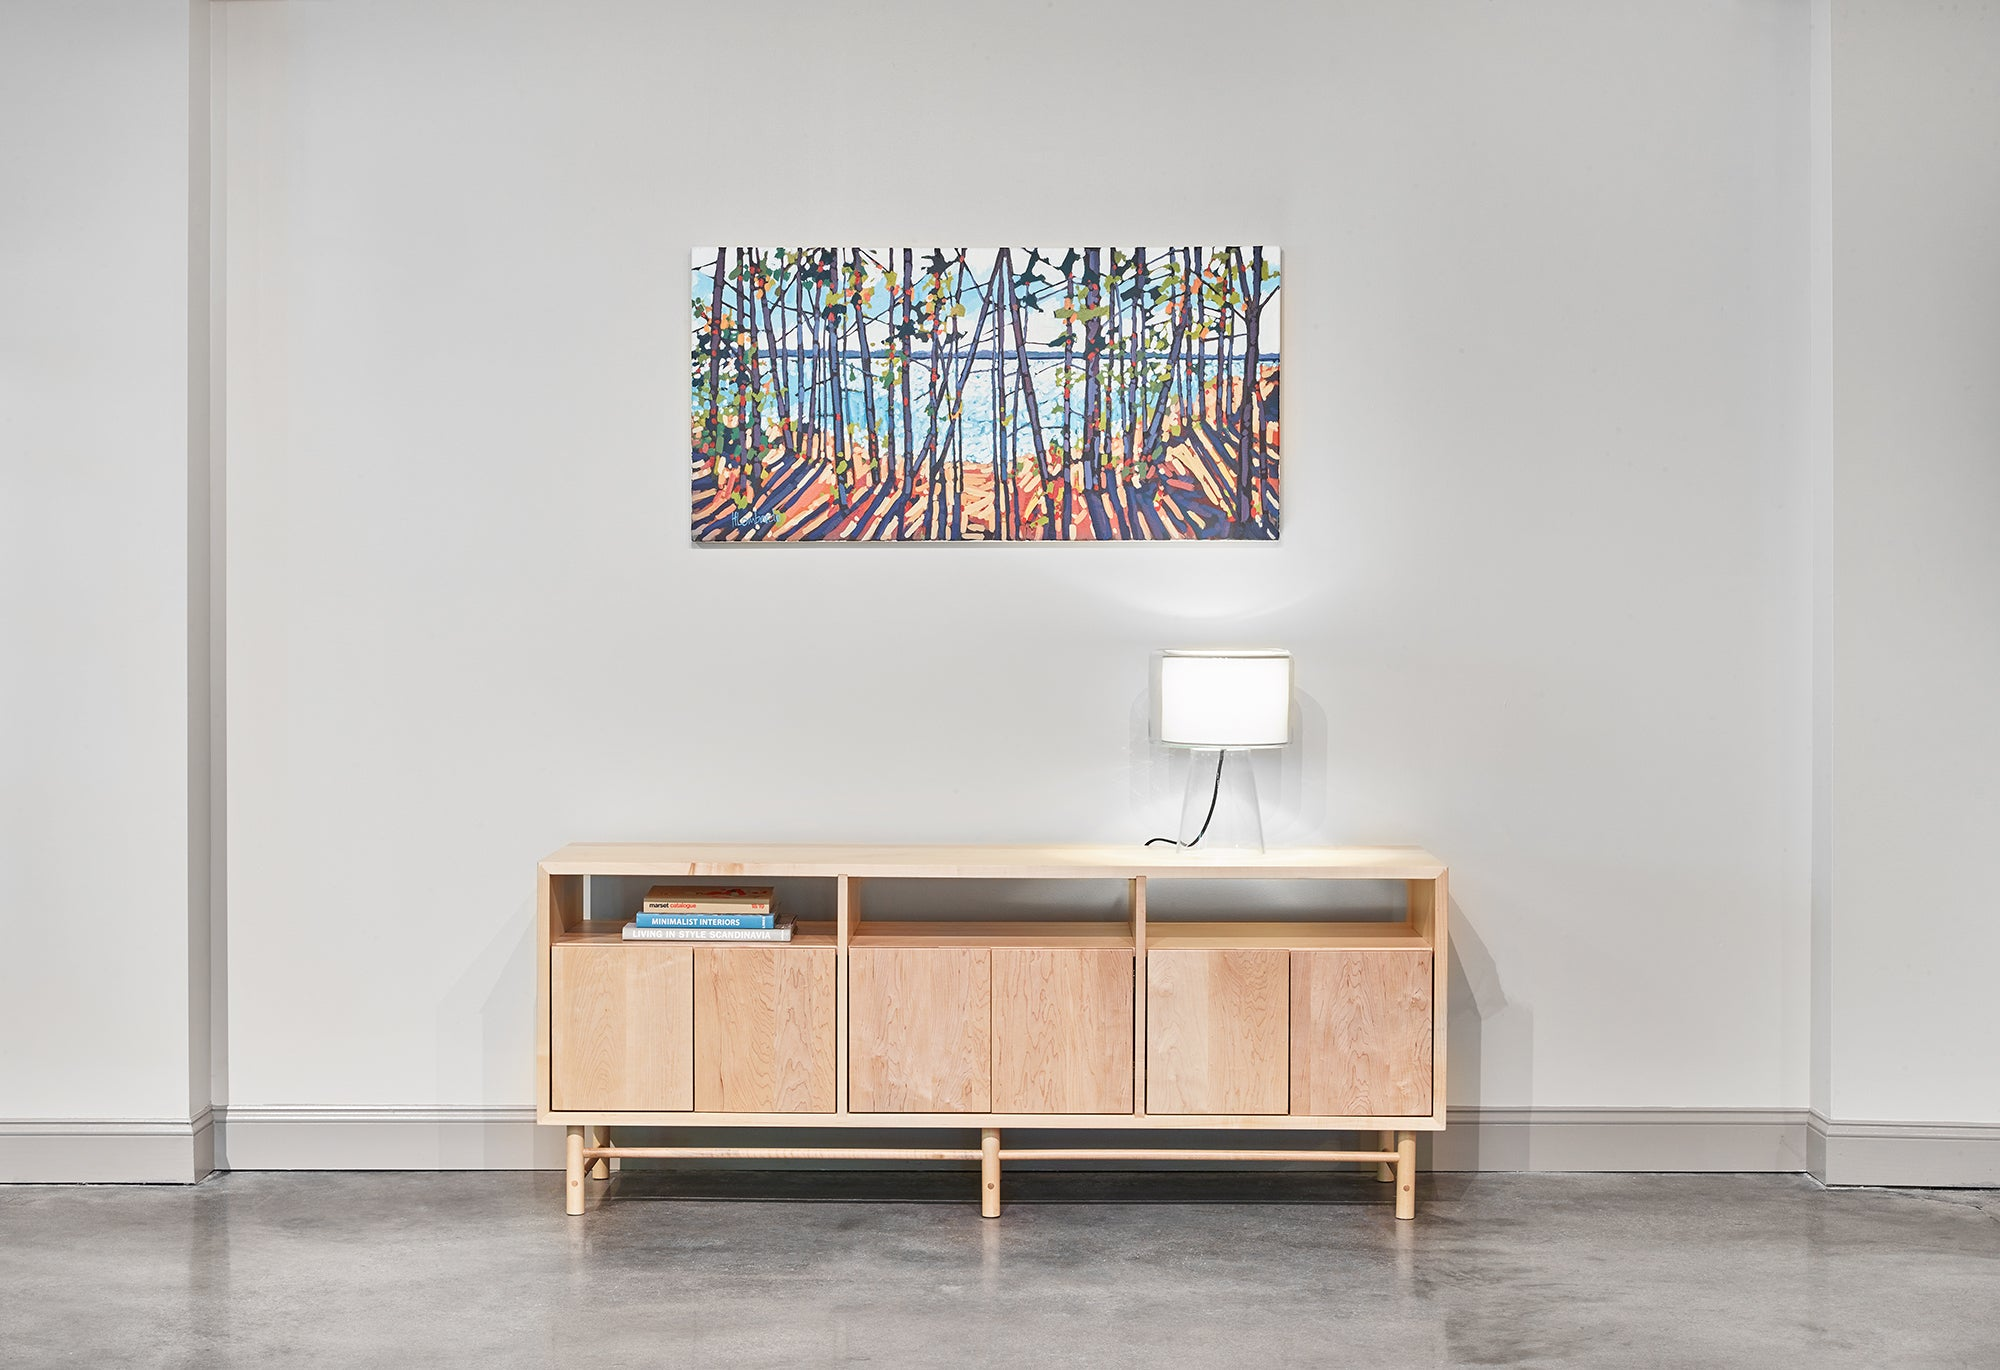 Industrial room with mid-century modern Navarend media case in solid maple with round legs and stretchers and an impressionism painting of trees